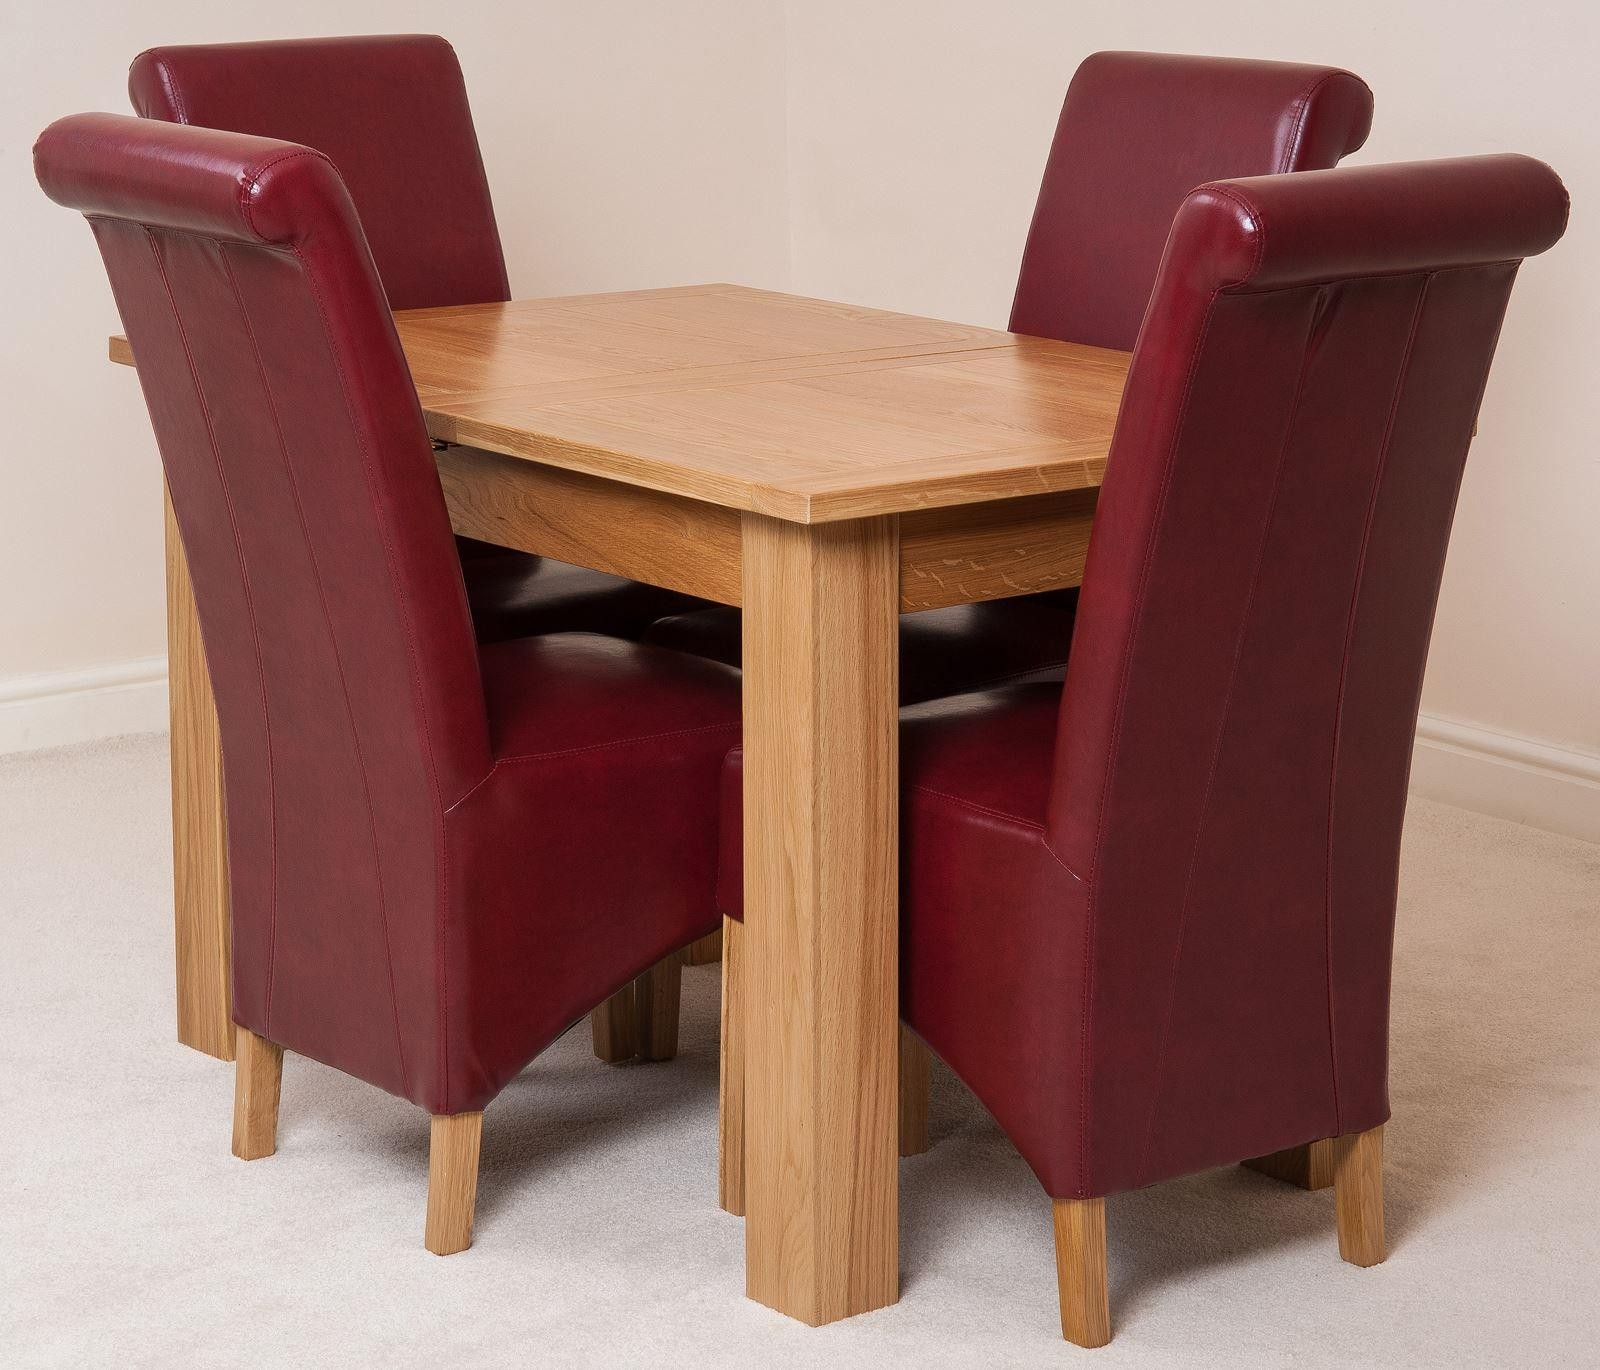 Hampton Solid Oak 120-160cm Extending Dining Table with 4 Montana Dining Chairs [Burgundy Leather]